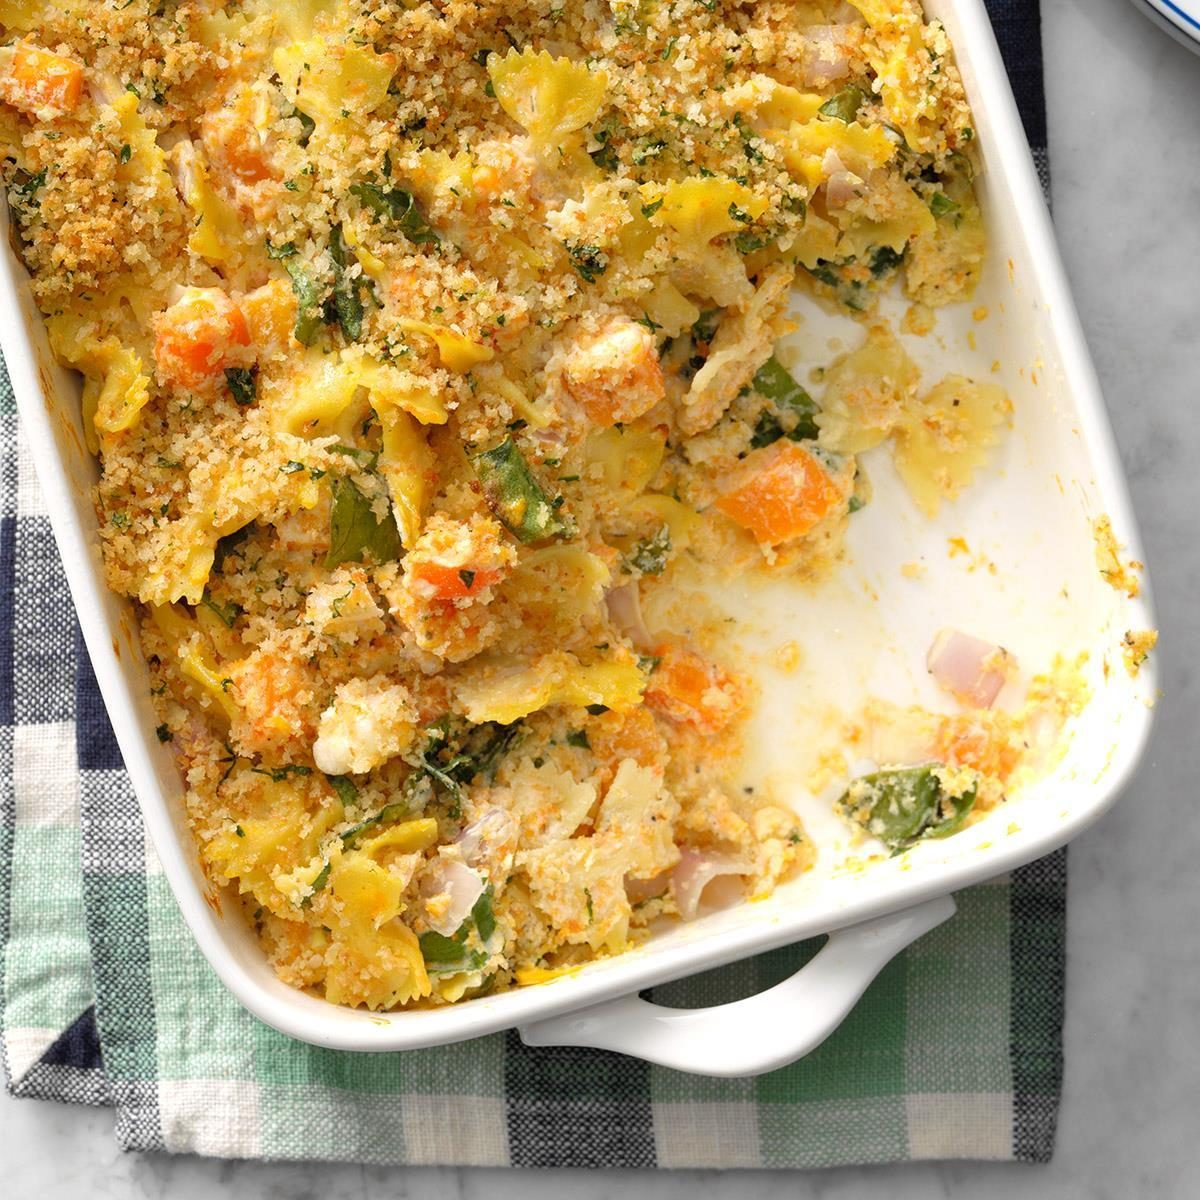 October 13: Butternut and Chard Pasta Bake